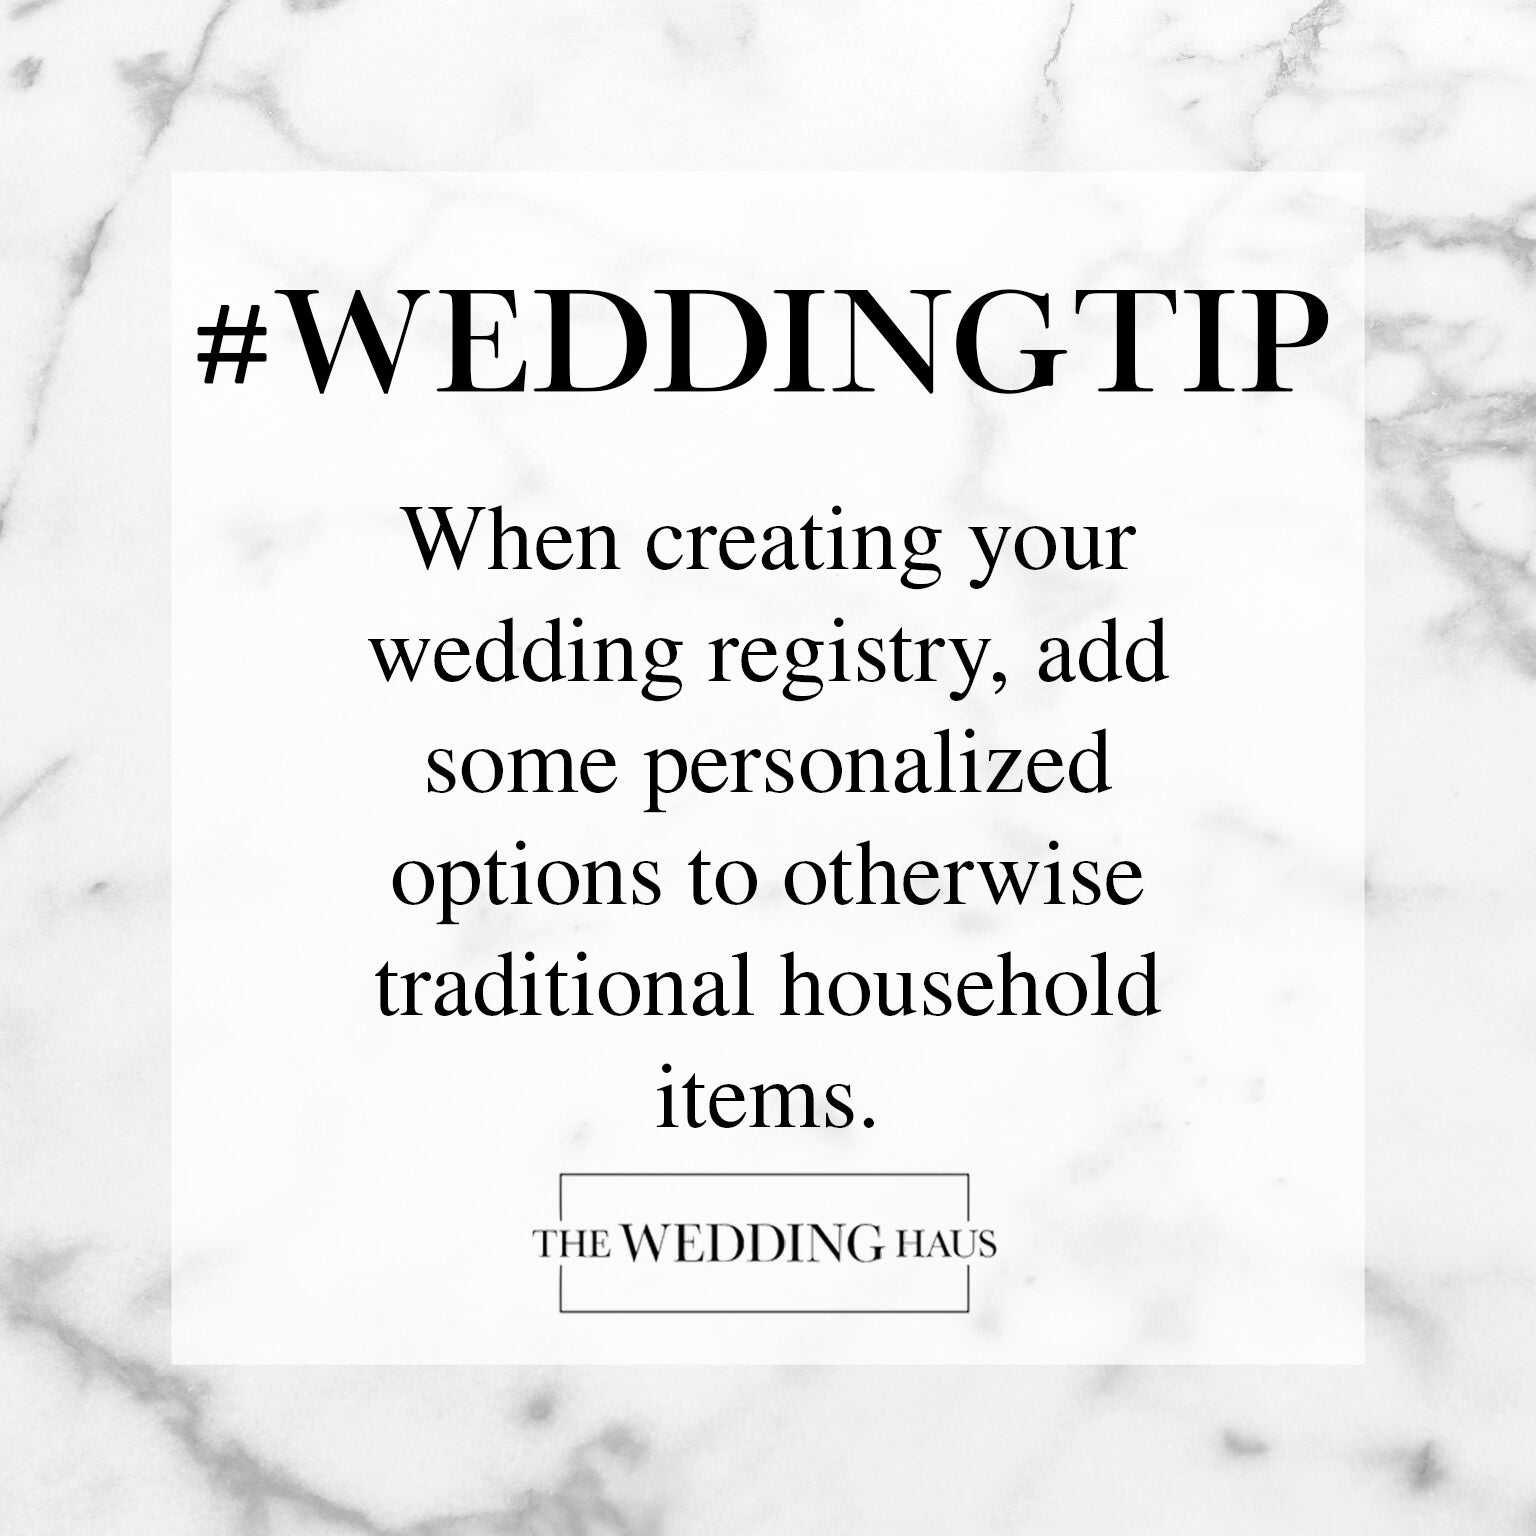 Creating Your Wedding Registry Wedding Tip from The Wedding Haus